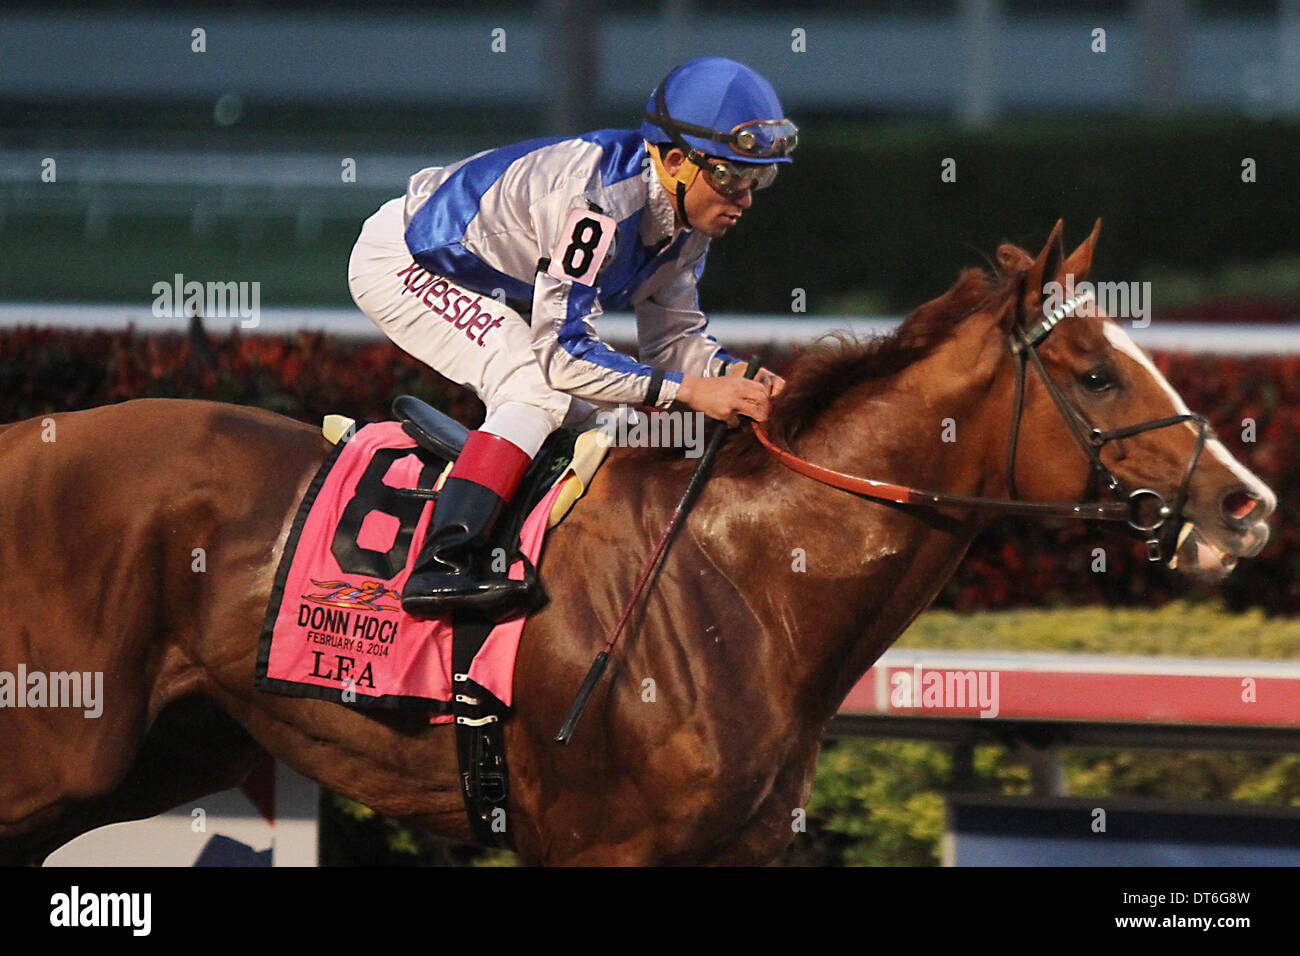 Hallandale Beach, Florida, USA. 9th Feb, 2014. Lea with Joel Rosario up on their way to winning the Donn Handicap(G1) at Gulfstream Park, Hallandale Beach Florida. 02-09-2014 © Liz Lamont/Eclipse/ZUMAPRESS.com/Alamy Live News - Stock Image